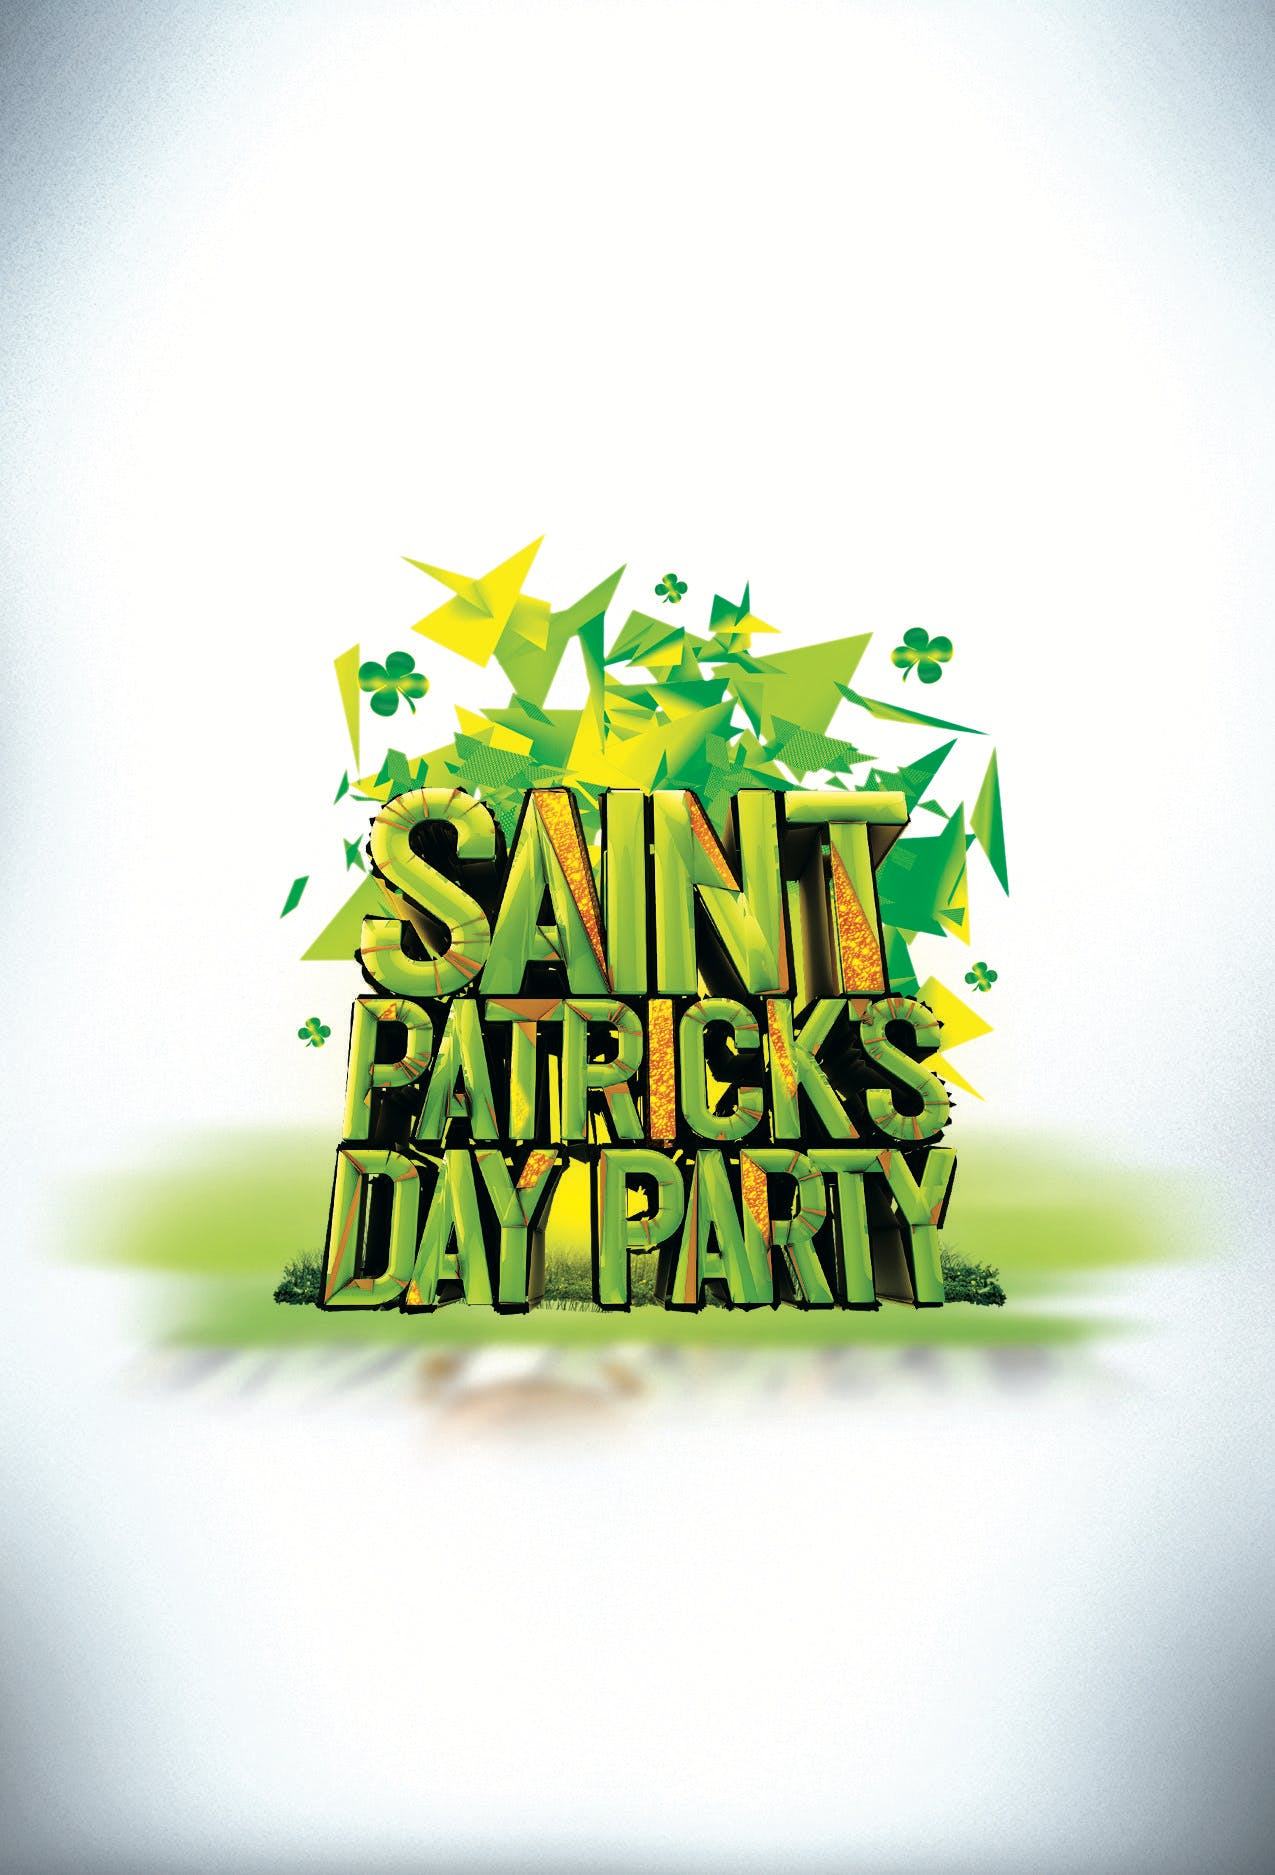 ST PATRICK'S PARTY 2019 @ FICTION NIGHTCLUB   OFFICIAL MEGA PARTY!